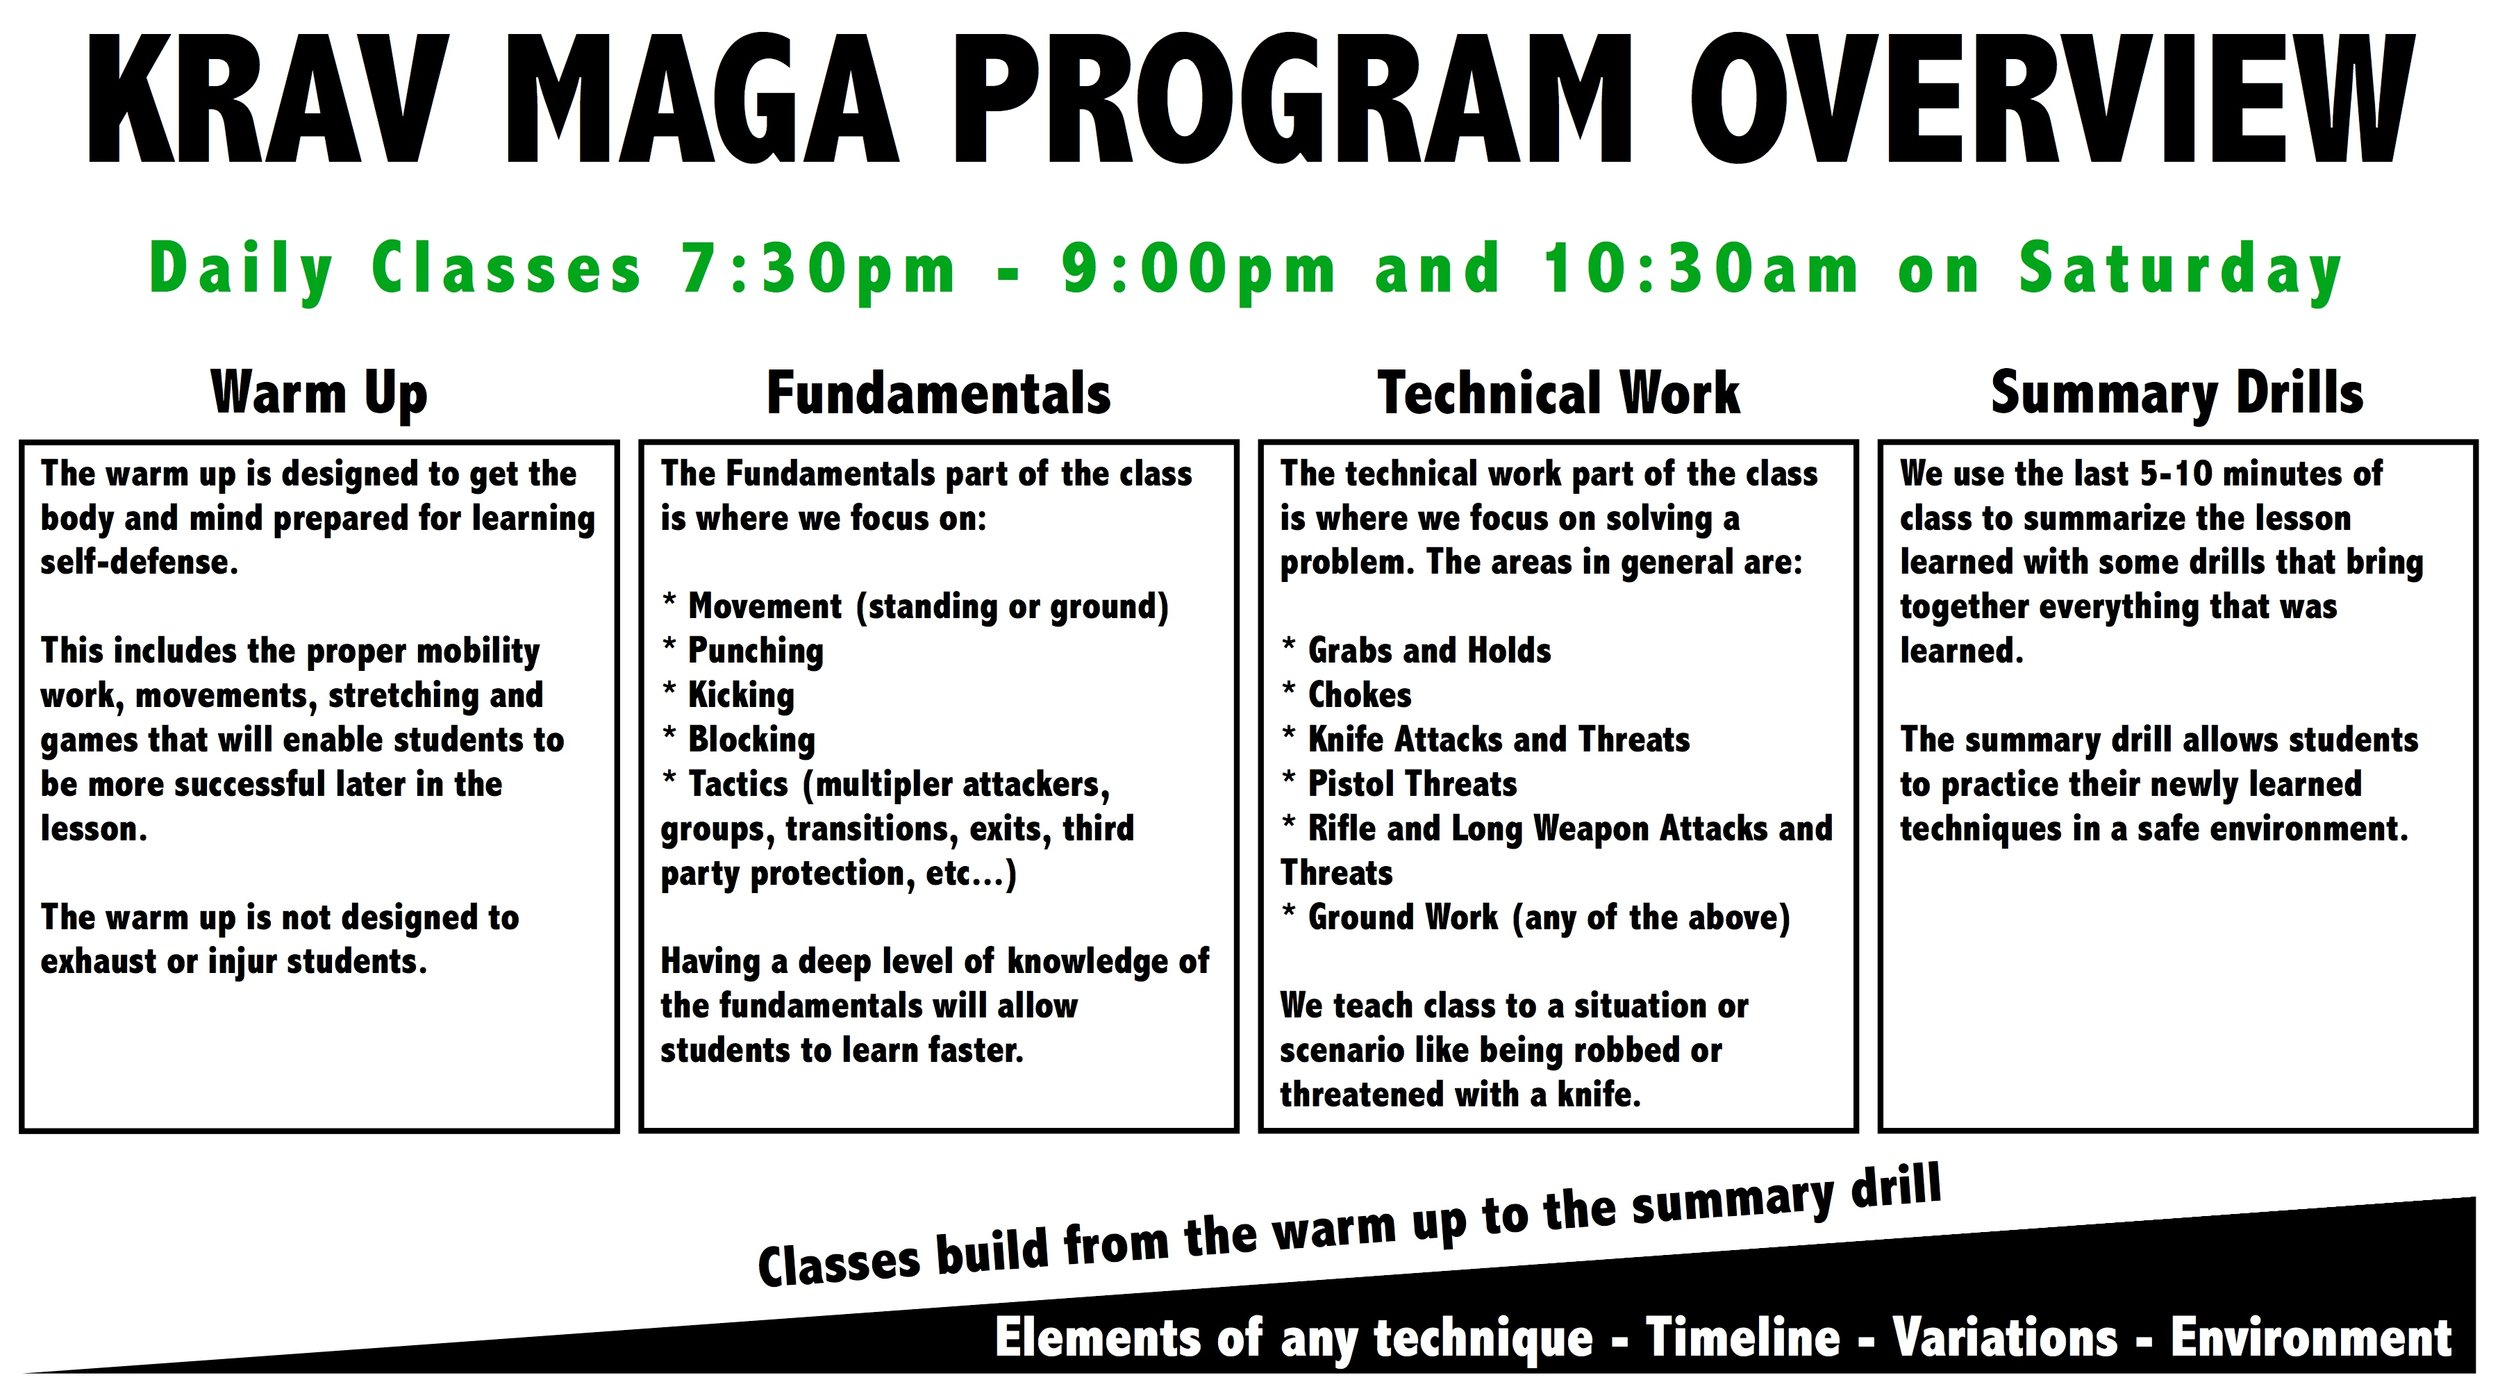 This is a summary of how we teach our Krav Maga classes at a high level.